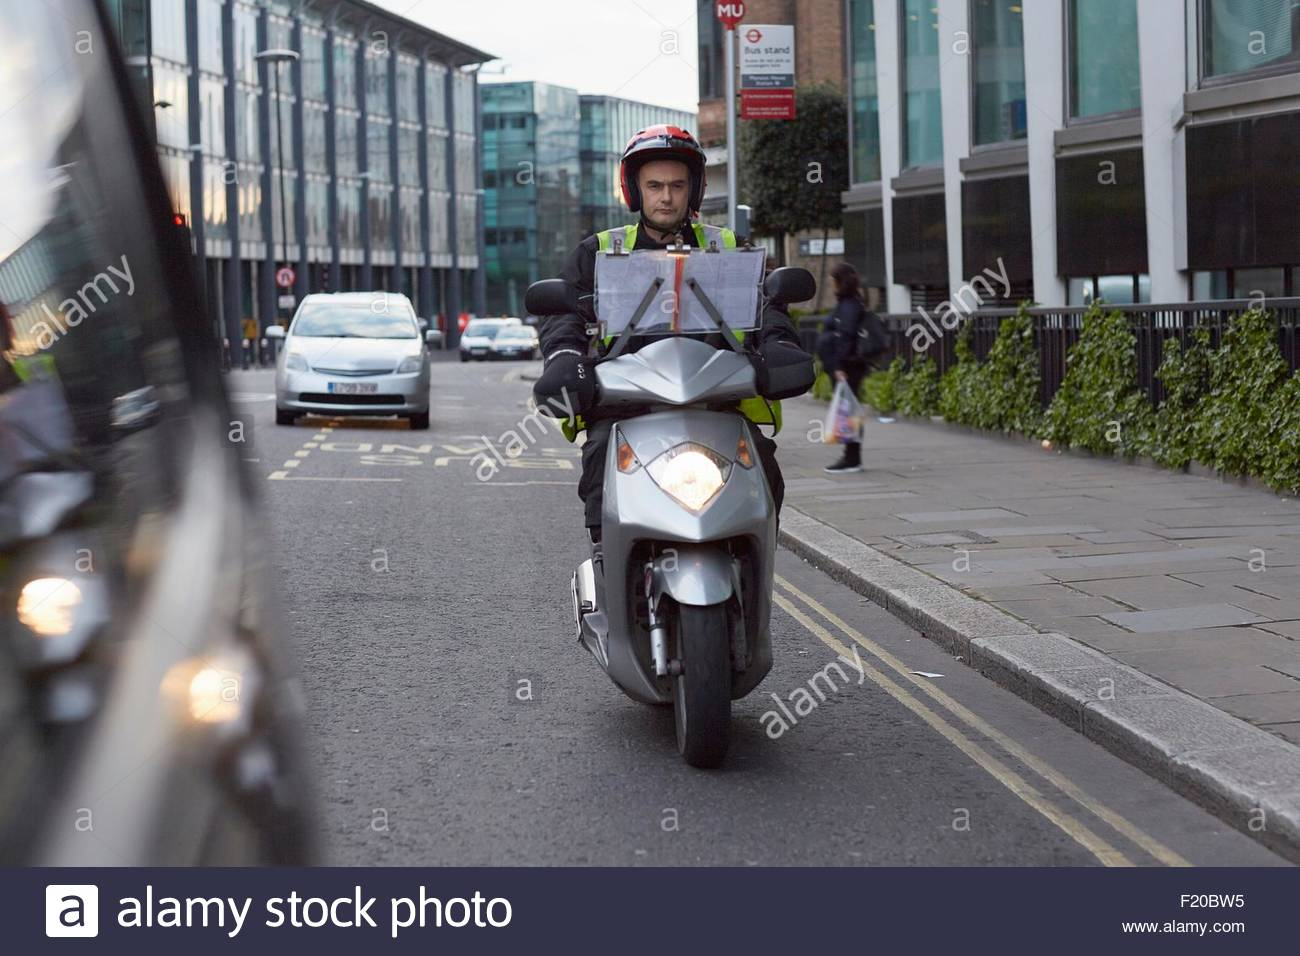 Motor scooter rider, undertaking taxi driver training 'the knowledge', on the move in London - Stock Image